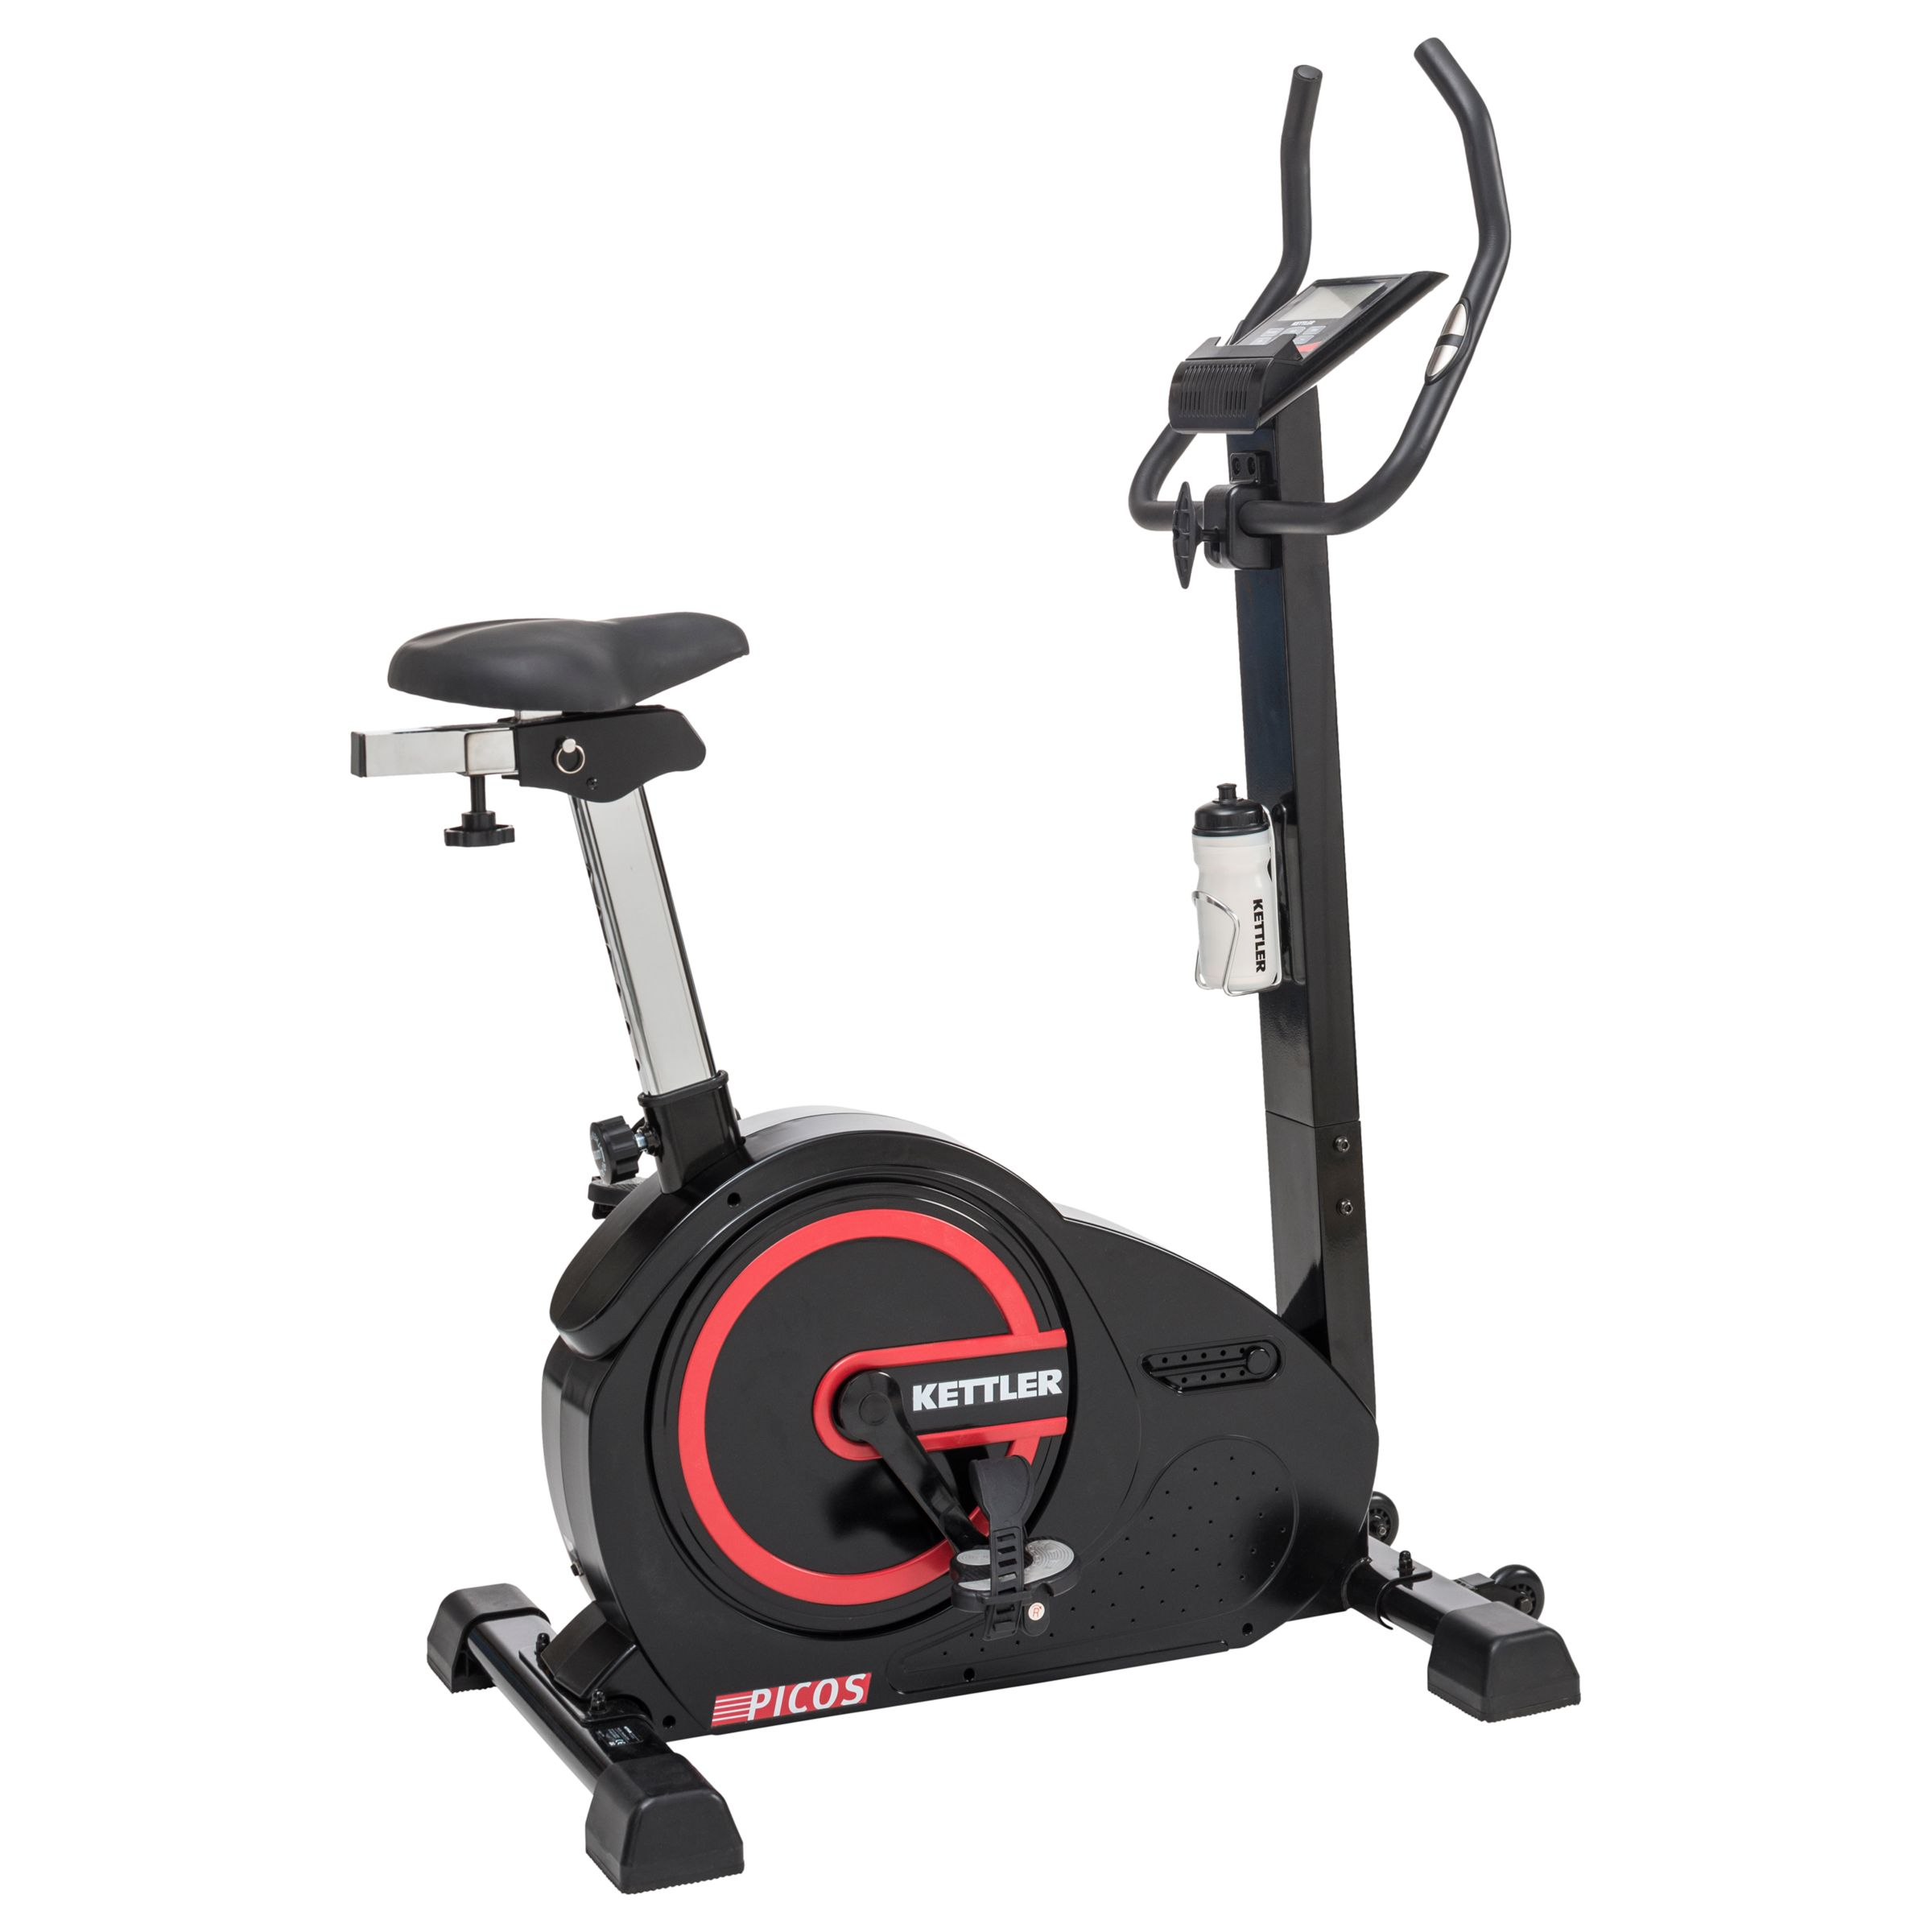 Kettler KETTLER Sport Picos Exercise Bike, Black/Red